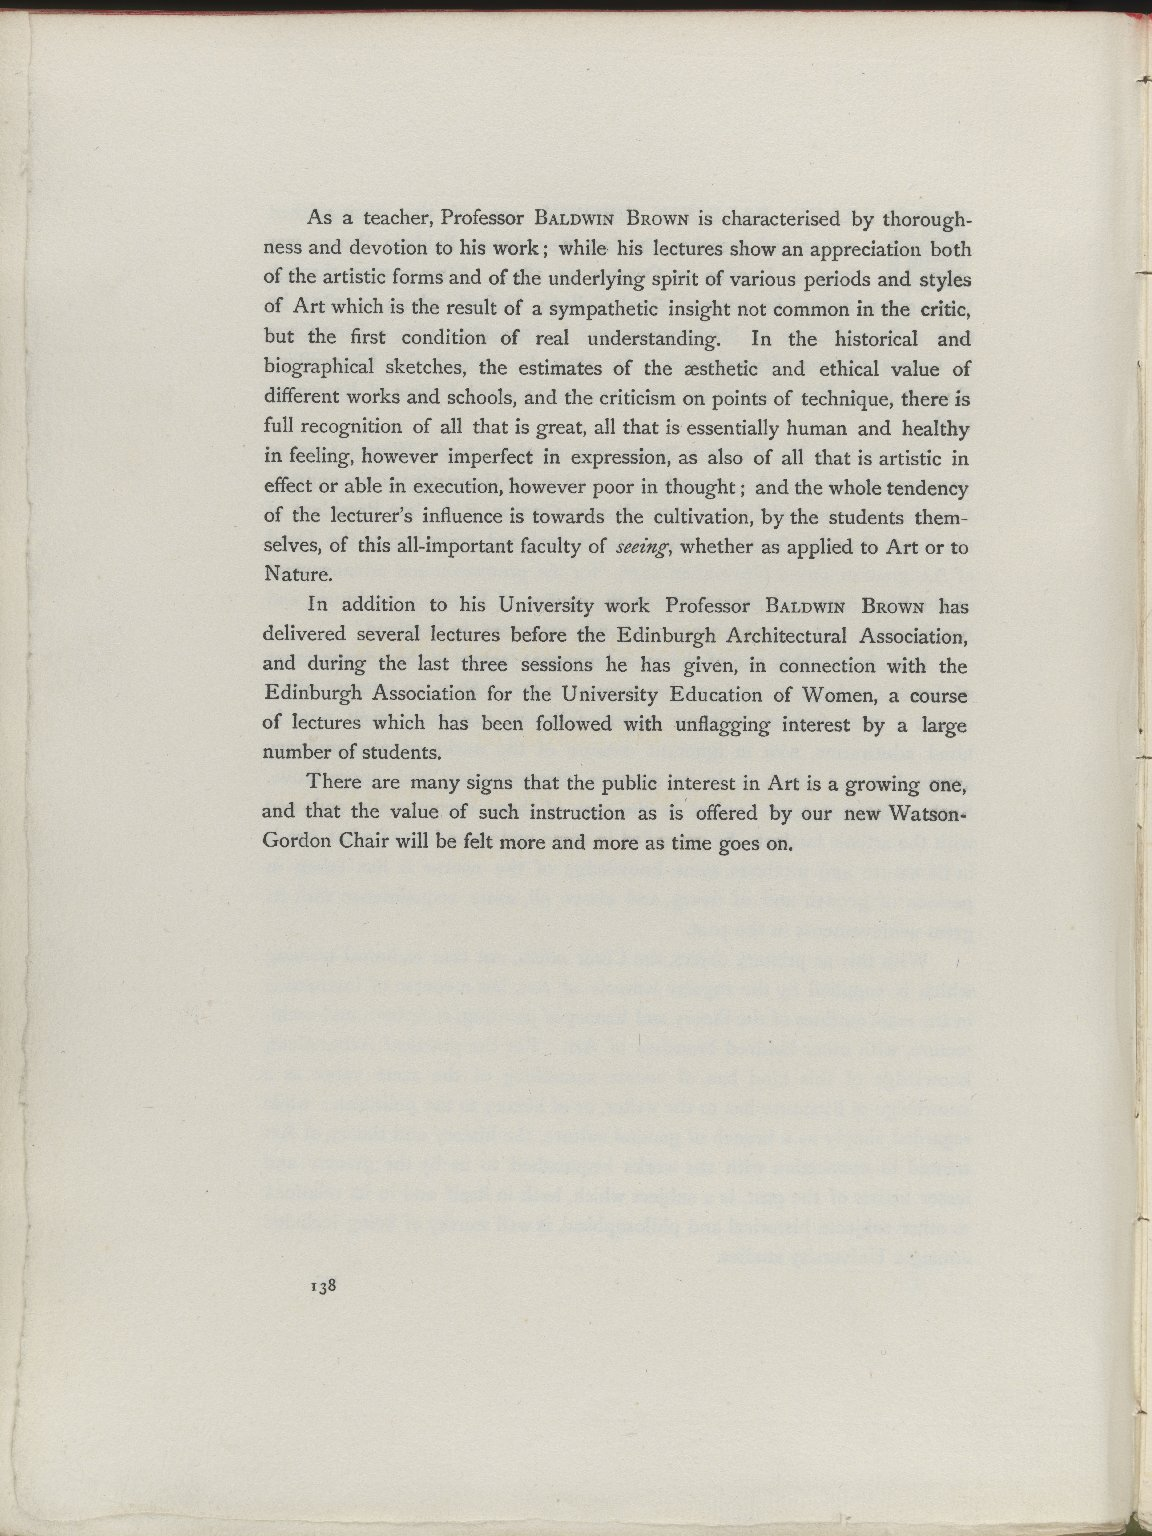 Quasi Cursores, Portraits of the High Officers and Professors of the University of Edinburgh, p.138